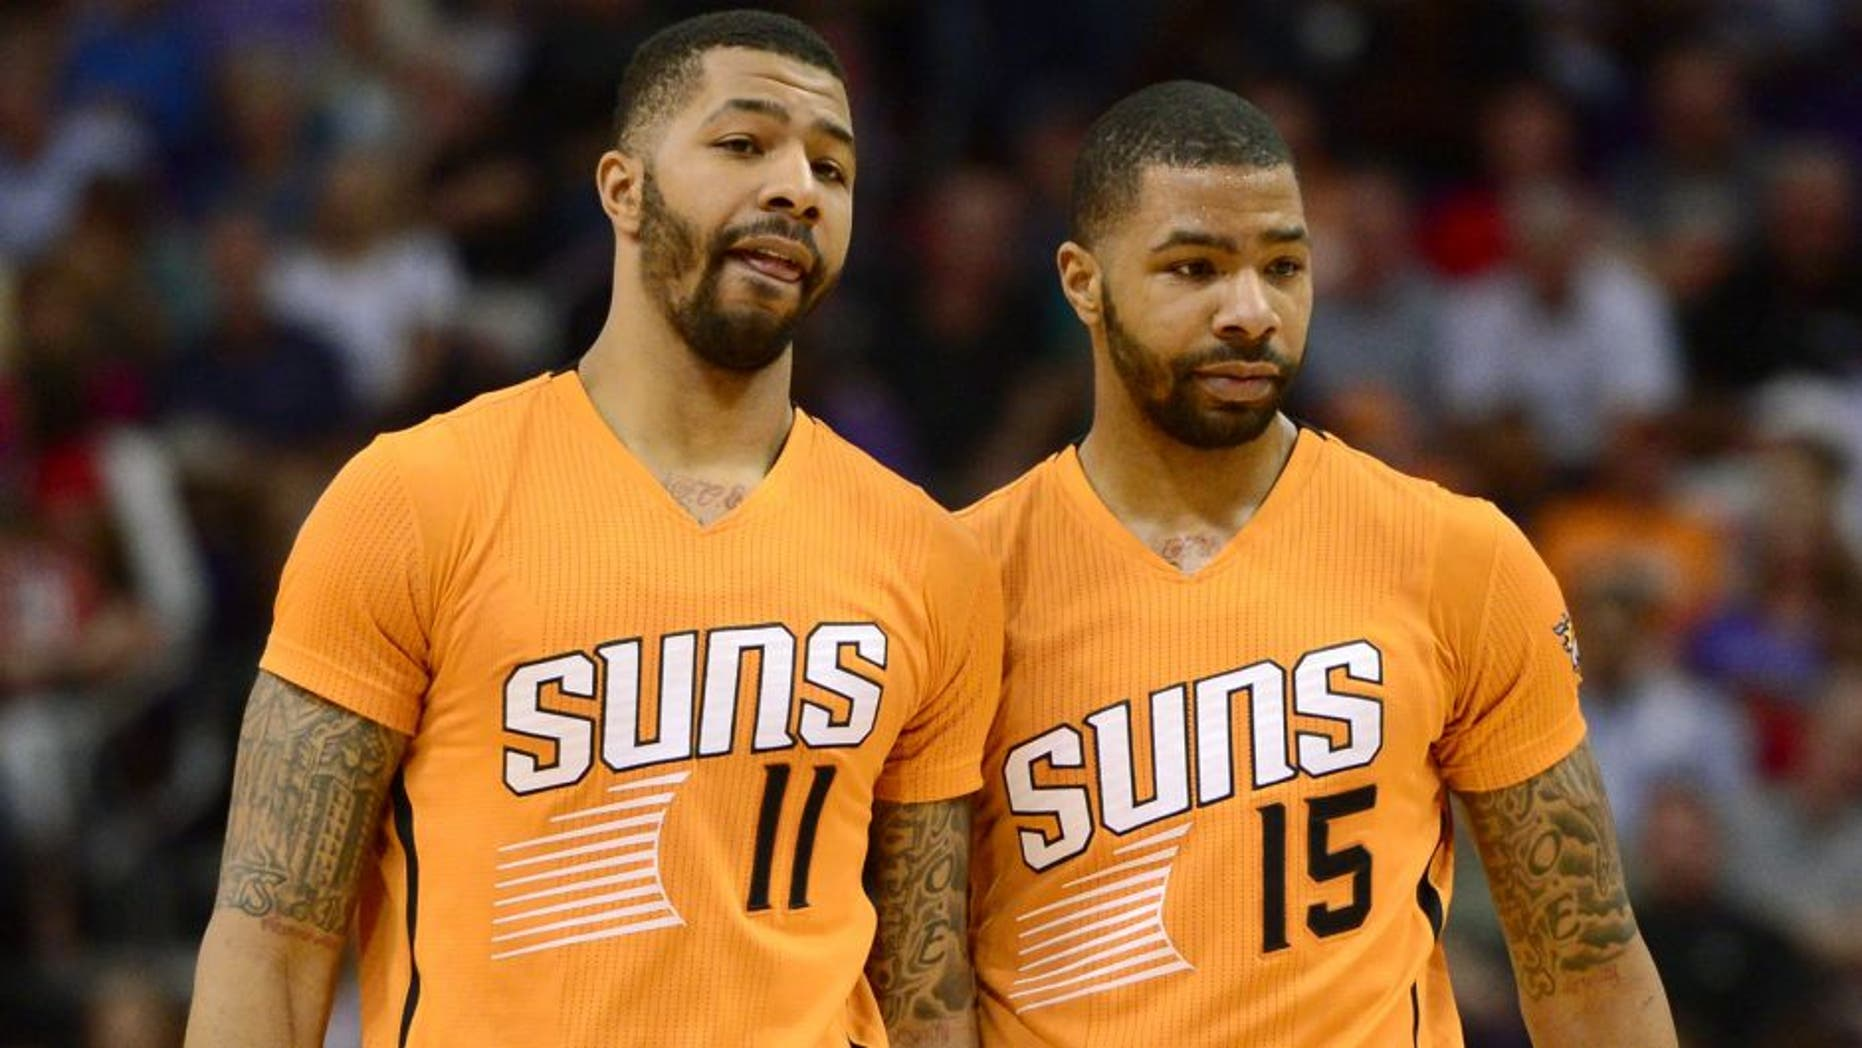 Mar 27, 2015; Phoenix, AZ, USA; Phoenix Suns forward Markieff Morris (11) and Phoenix Suns forward Marcus Morris (15) talk during a timeout against the Portland Trail Blazers at US Airways Center. The Trail Blazers won the game 87-81. Mandatory Credit: Joe Camporeale-USA TODAY Sports